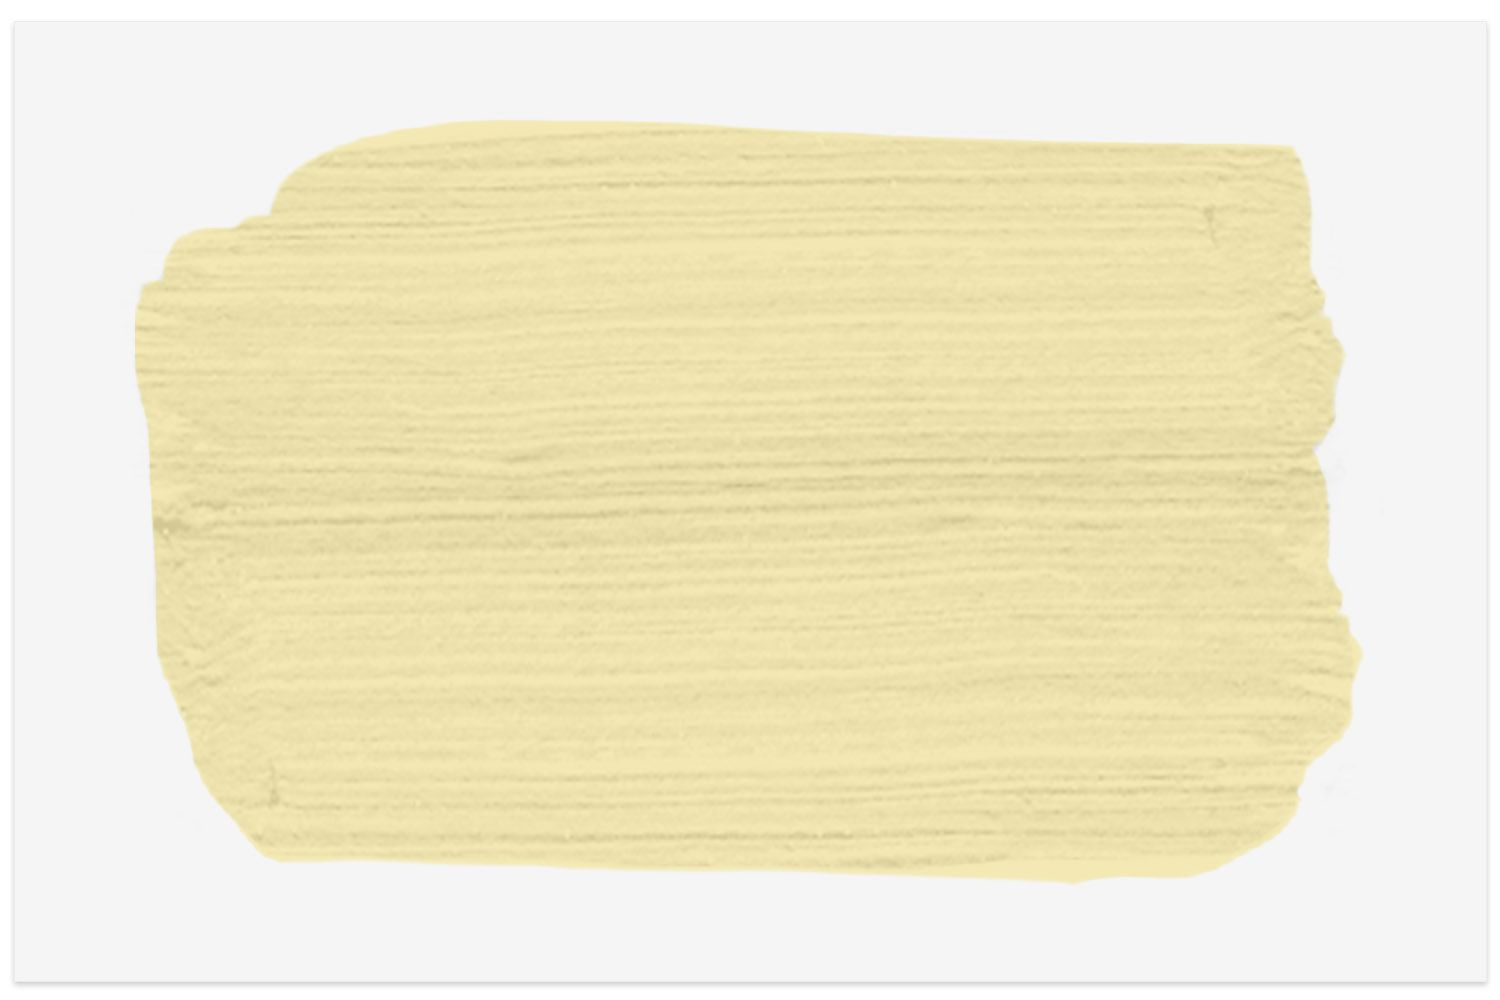 Stucco Cream with Tile Roof paint swatch